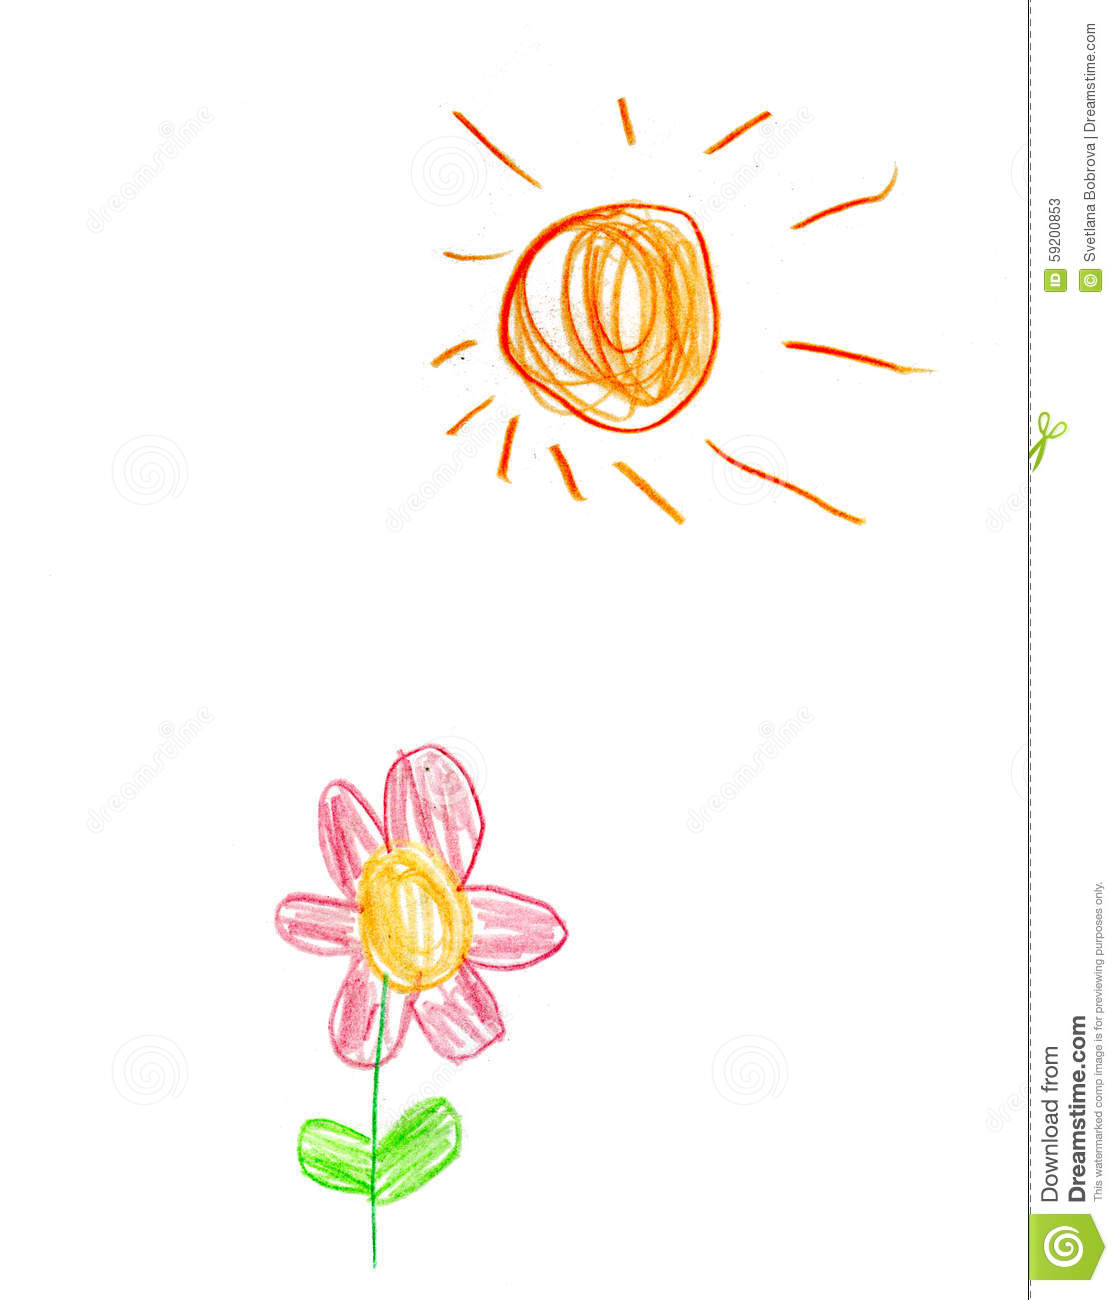 Flower Child Line Drawing : Children s drawing sun and flower stock illustration